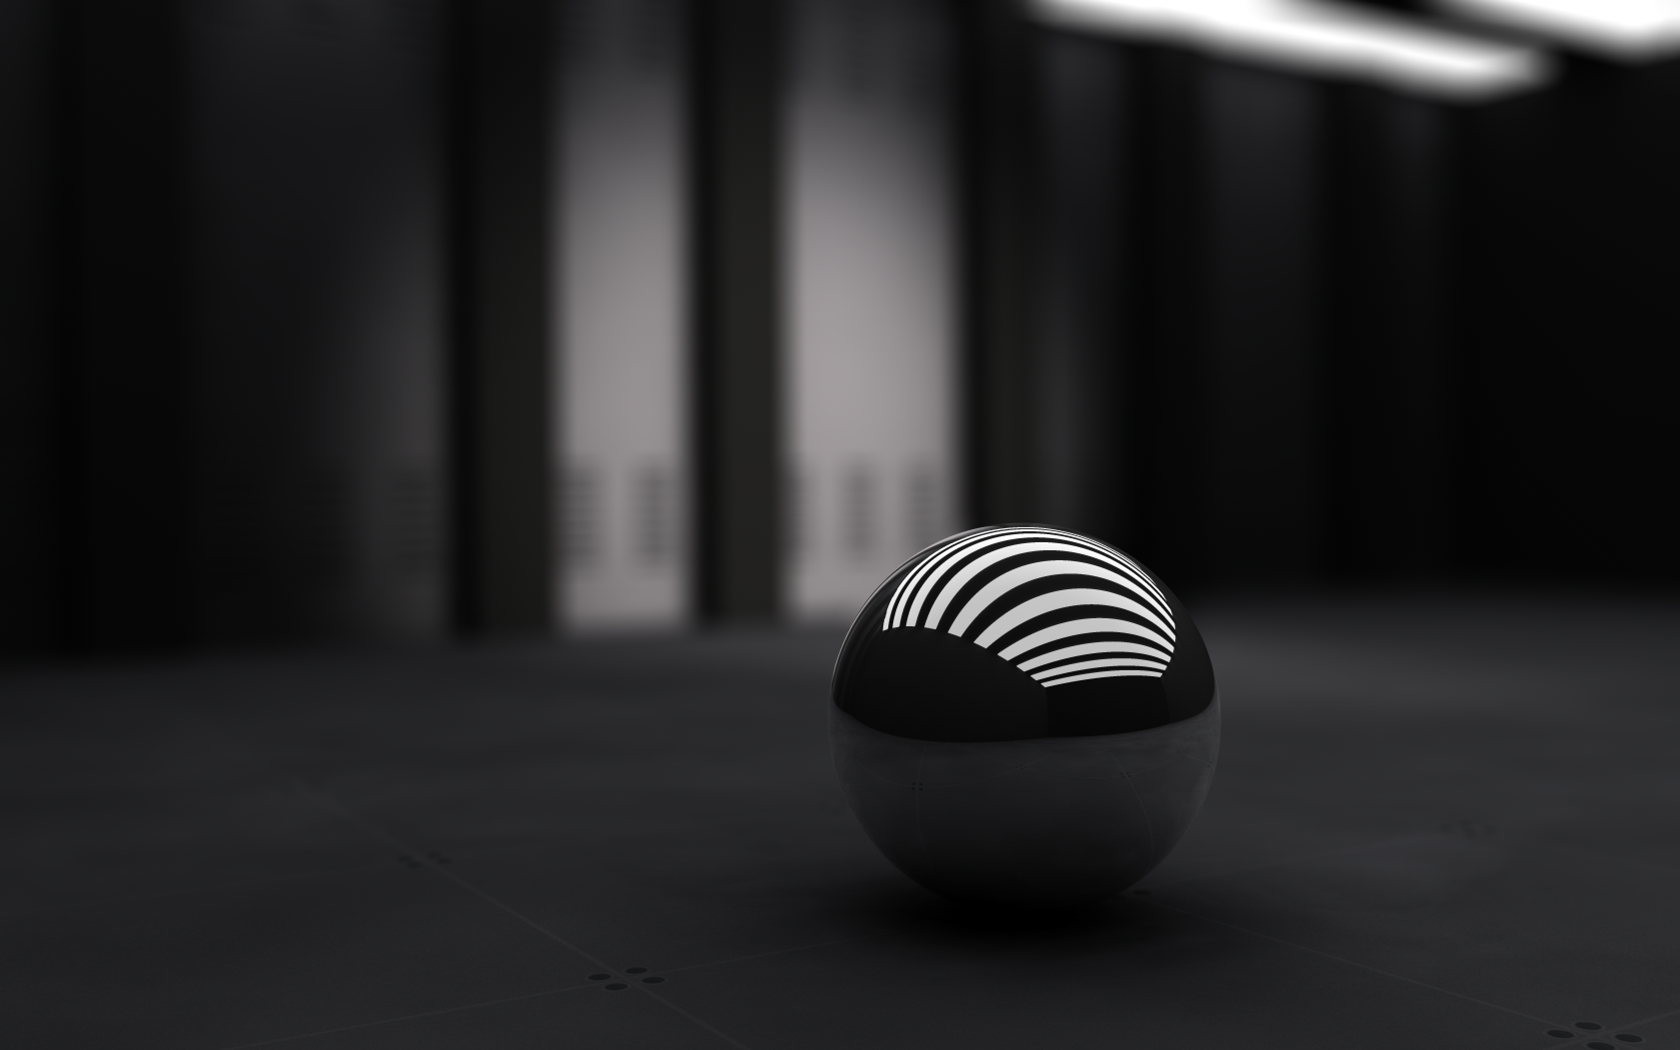 3D Black Ball Wallpapers HD Wallpapers 1680x1050